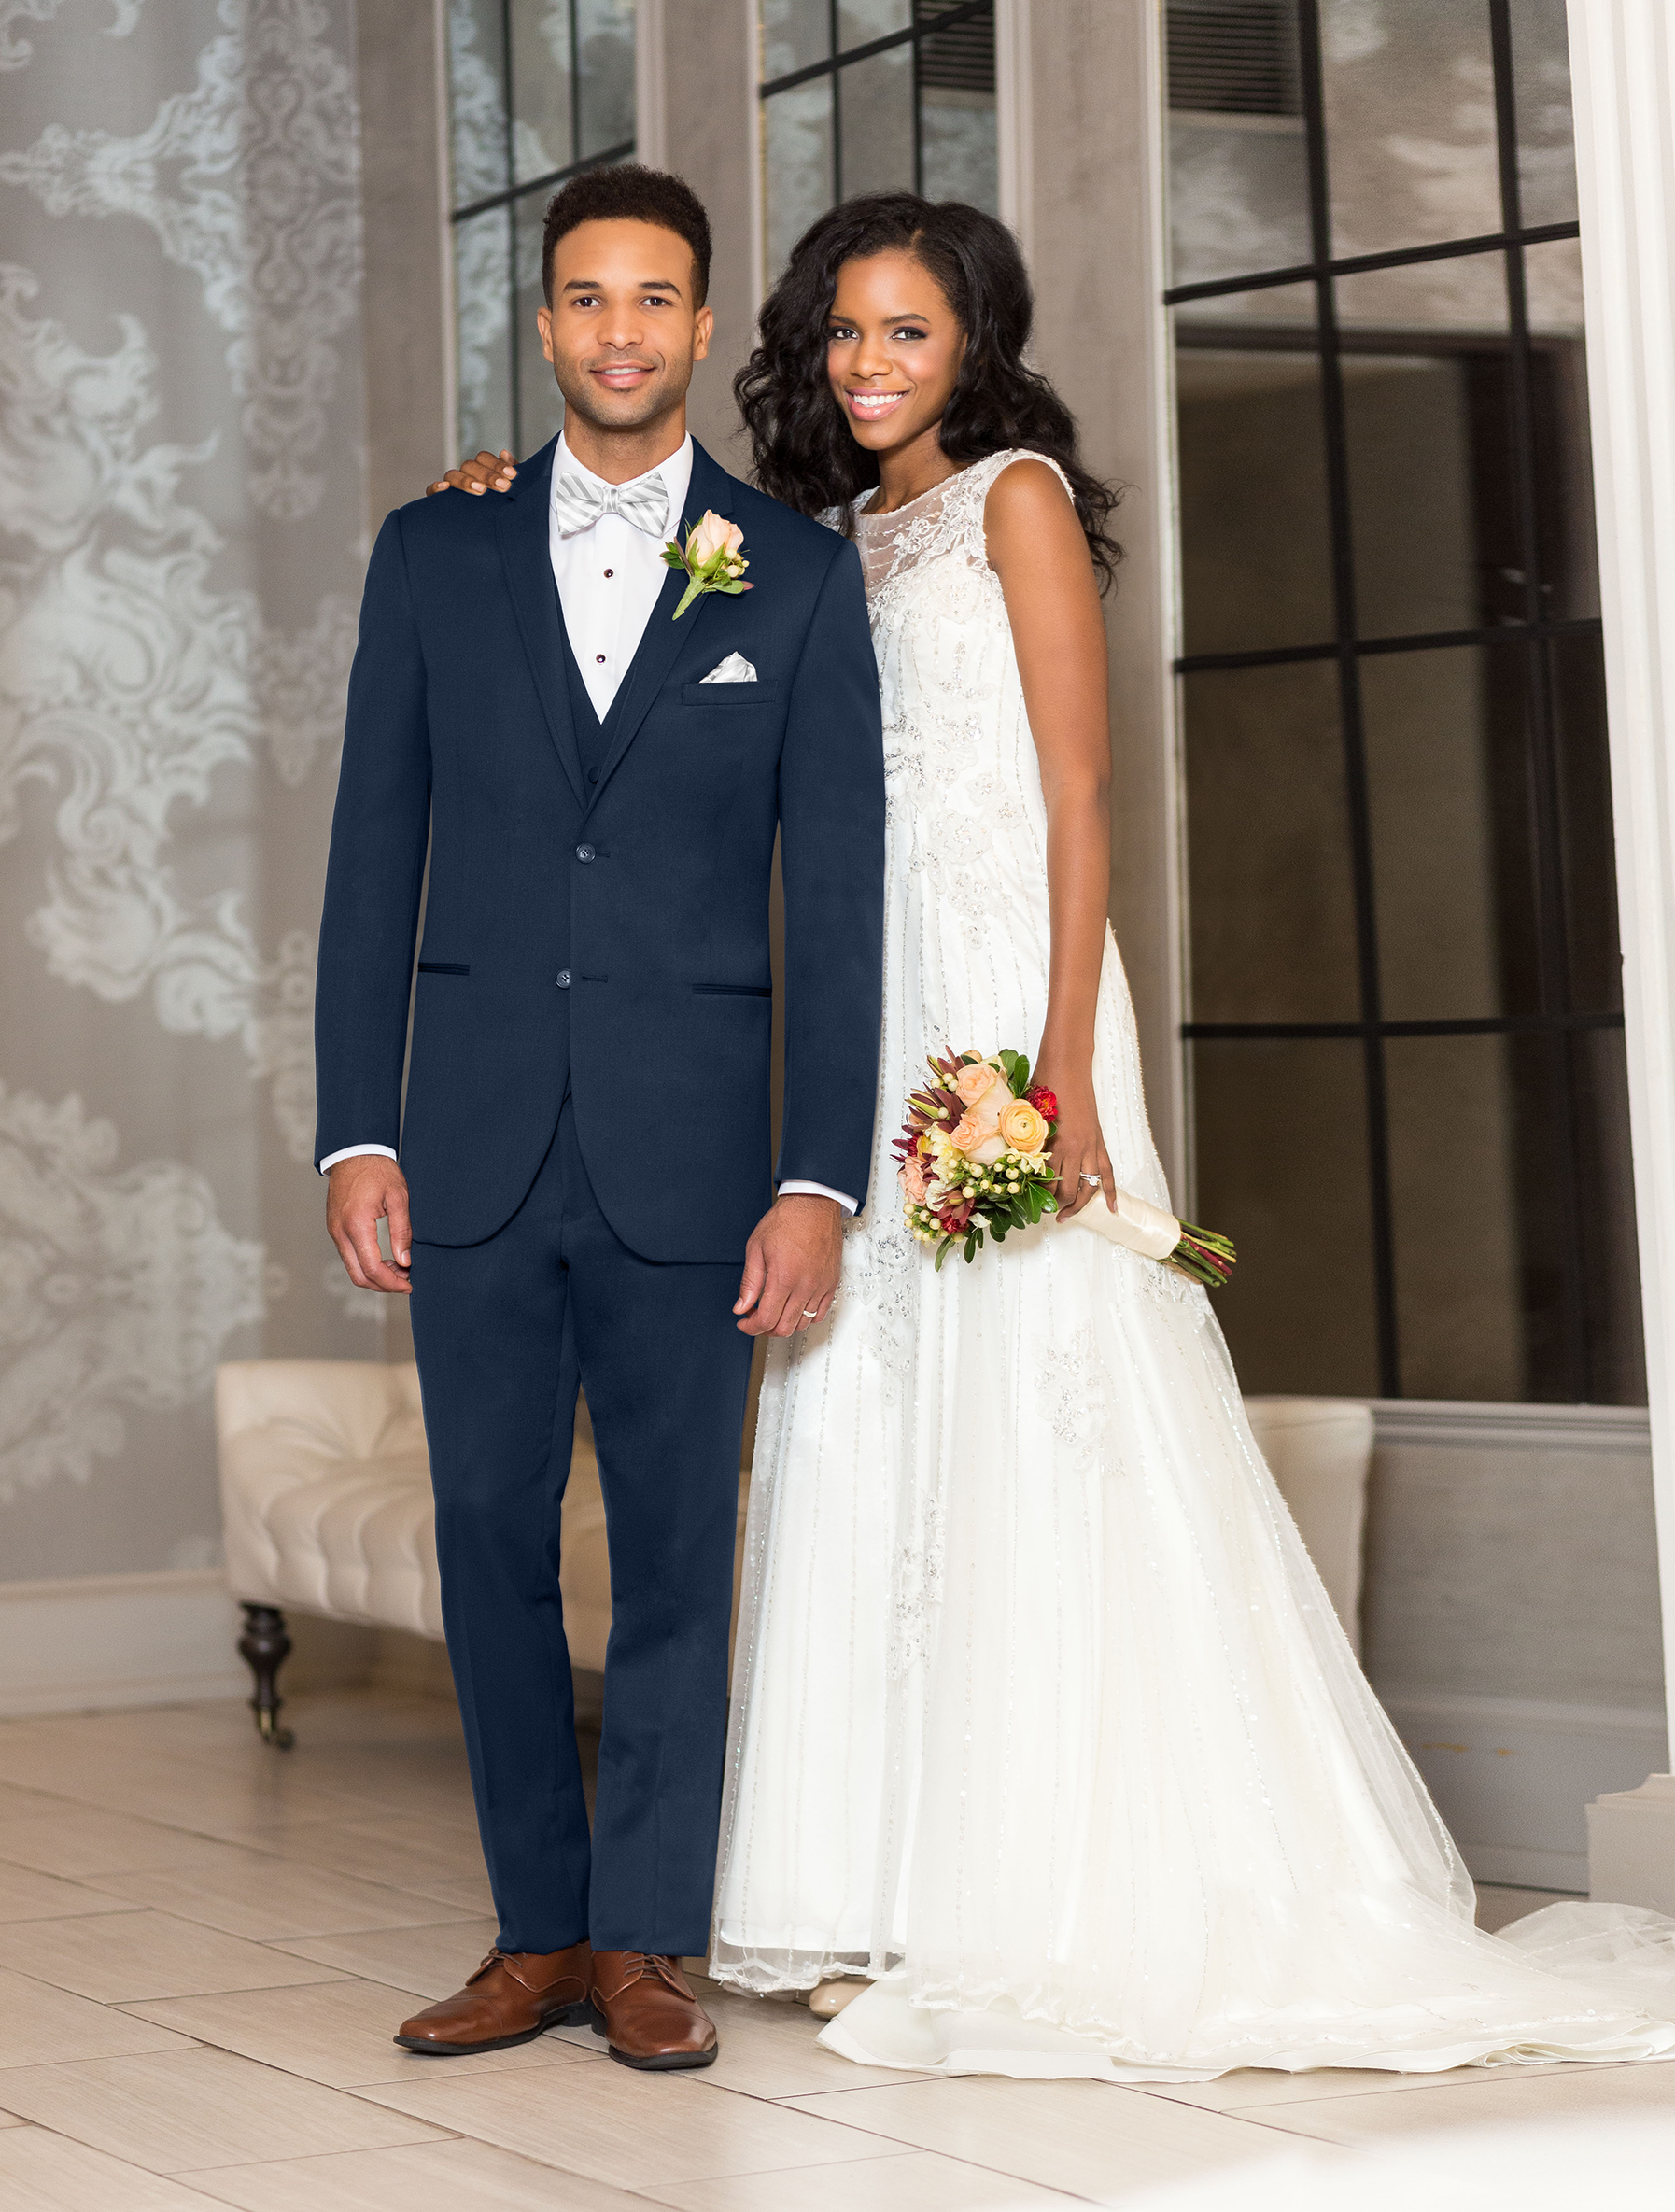 View Grey & Navy Tuxedos